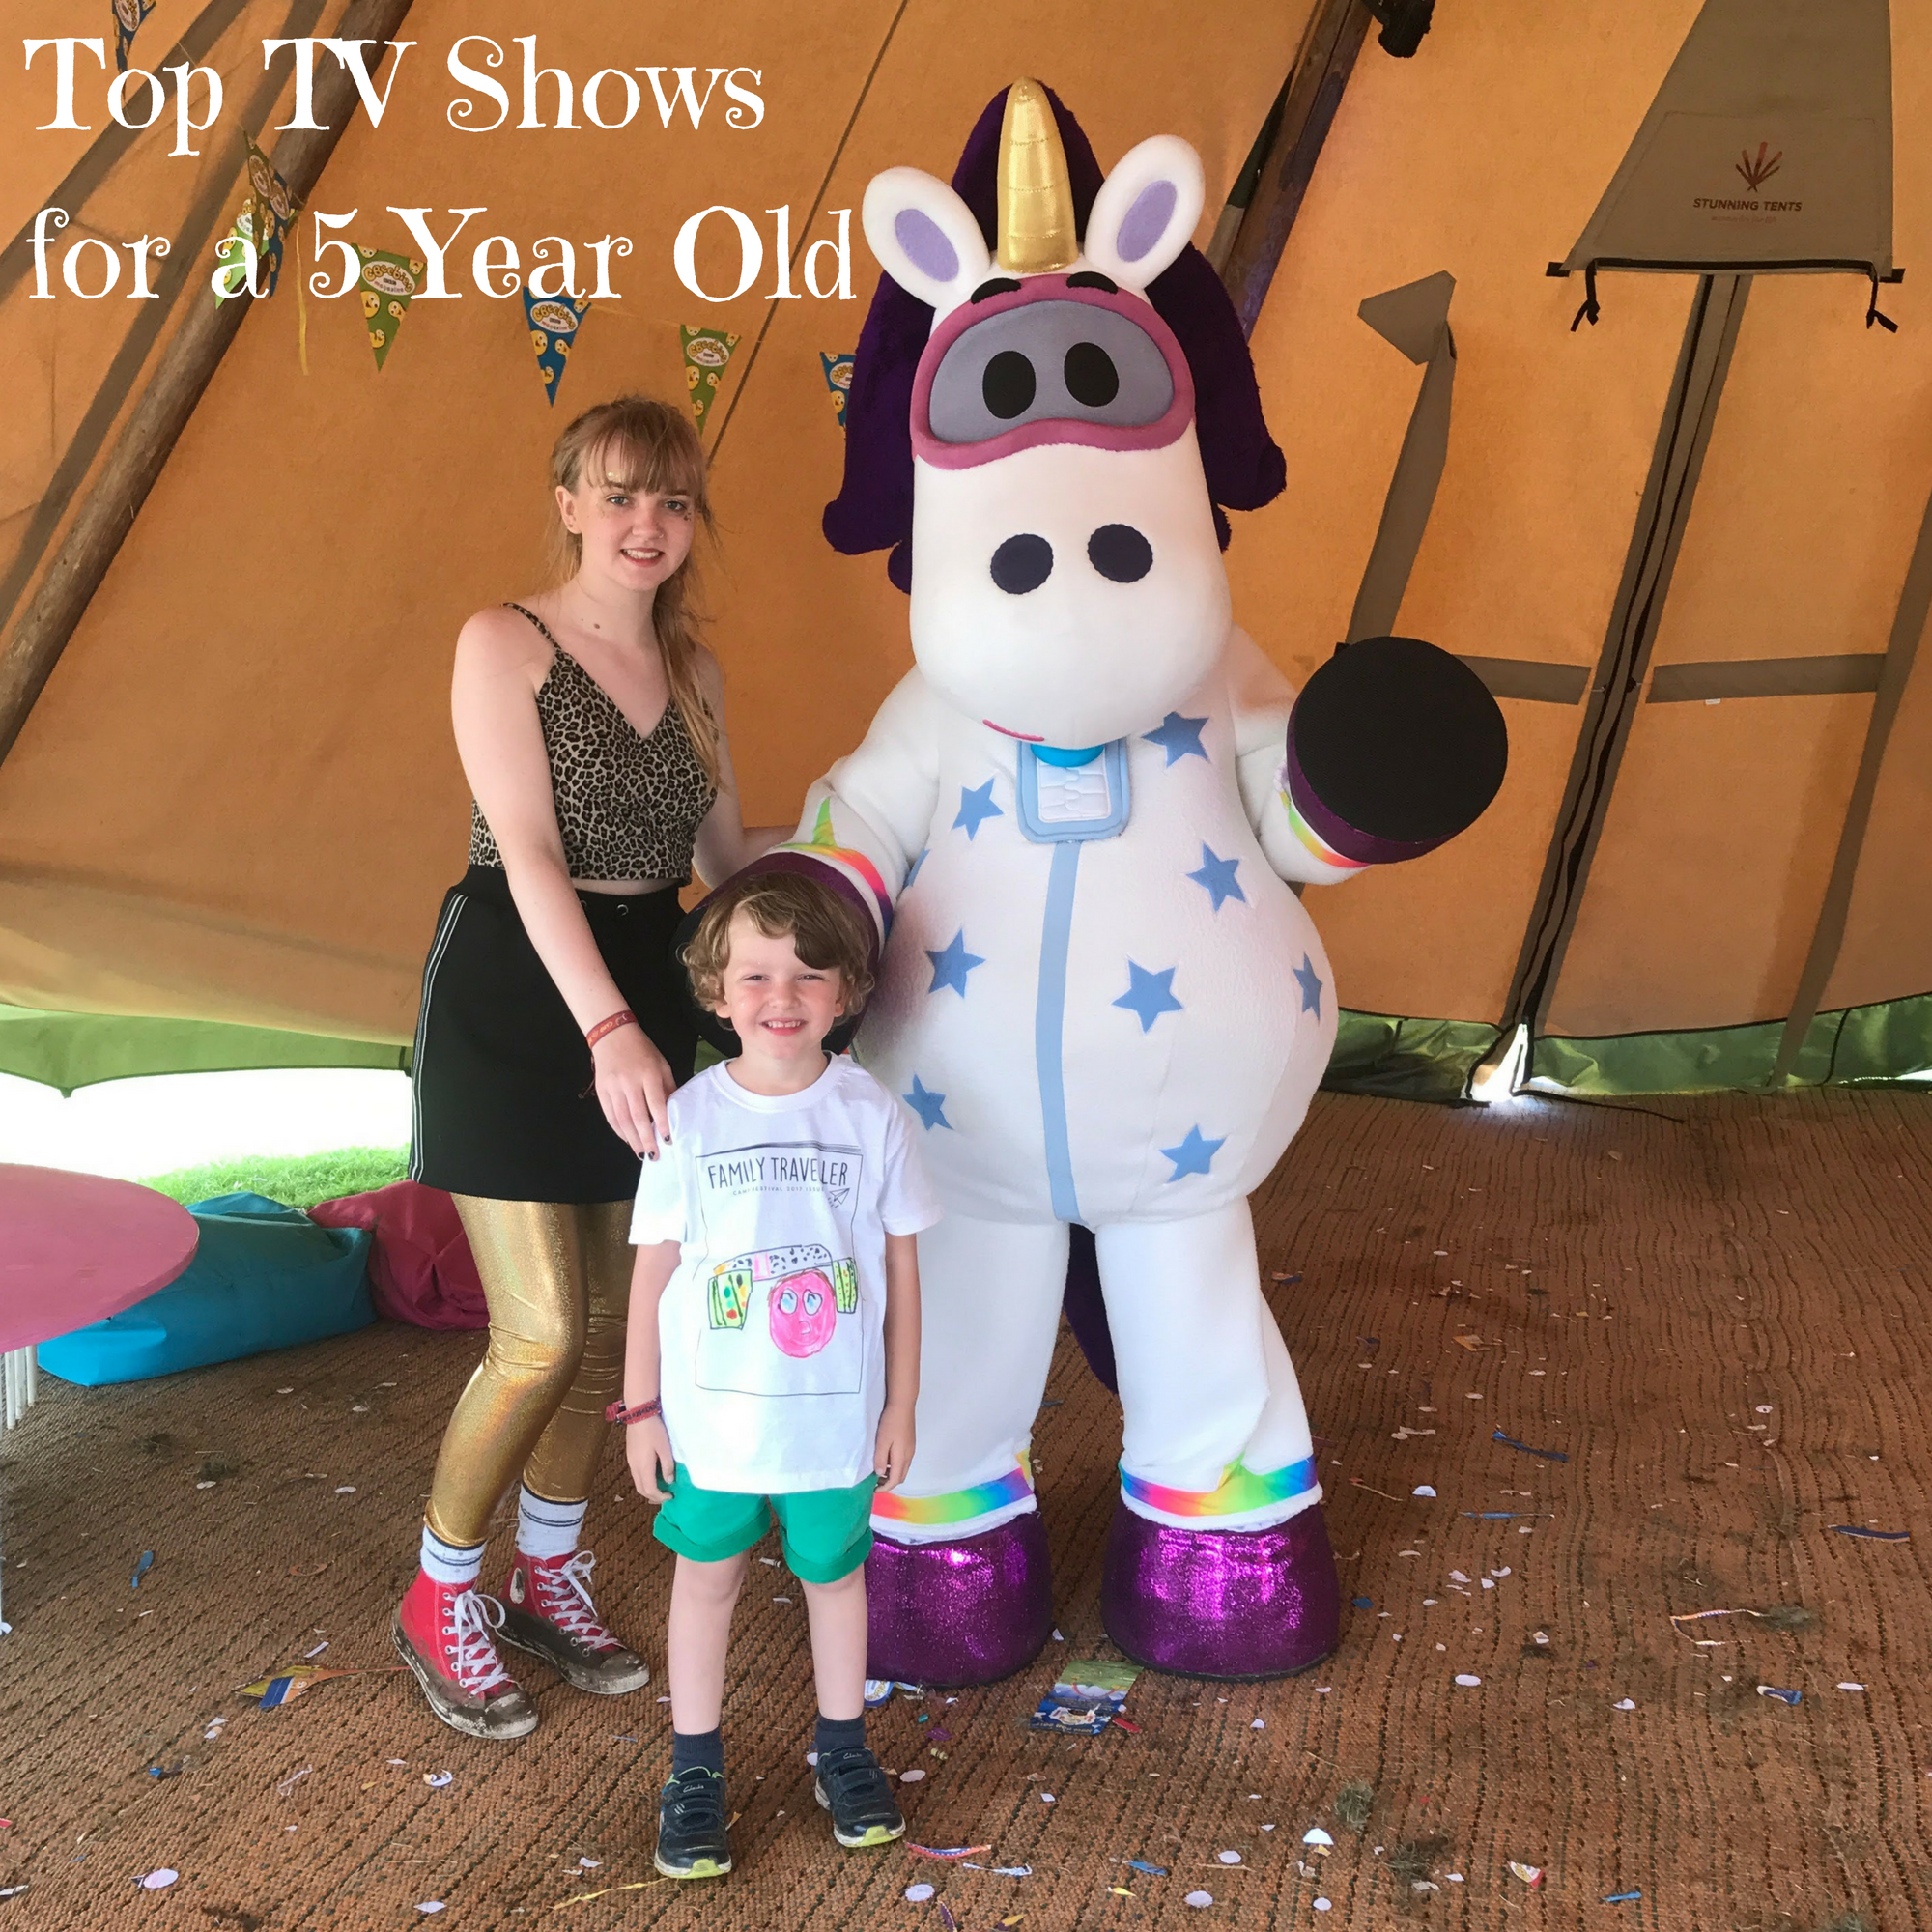 Top TV Shows for a 5 Year Old